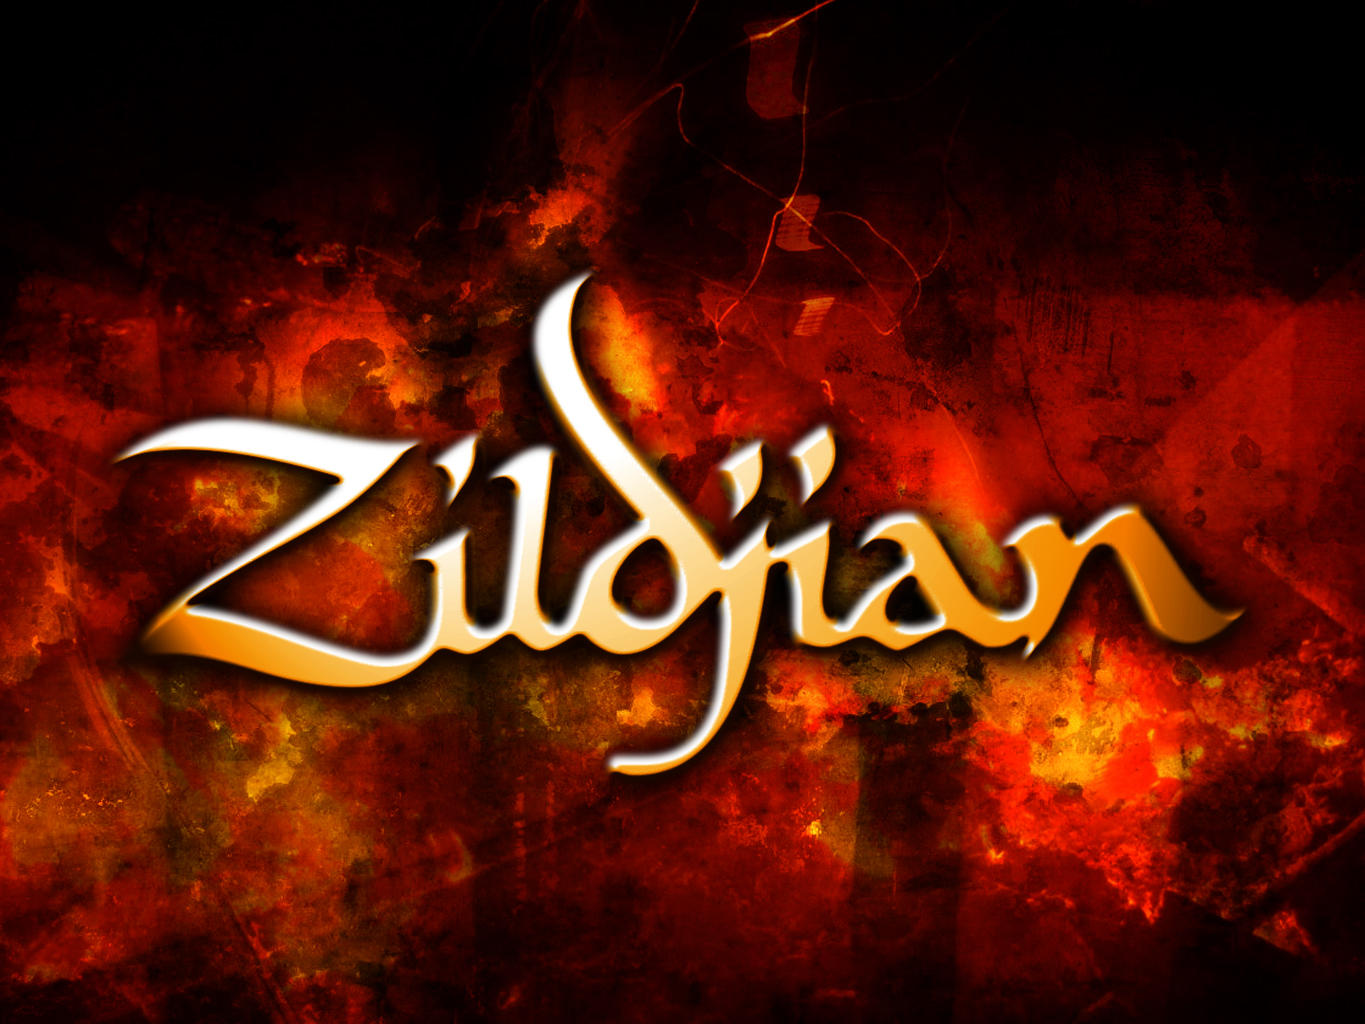 Zildjian wallpaper by sirancelot on deviantart - Walpepar photos ...